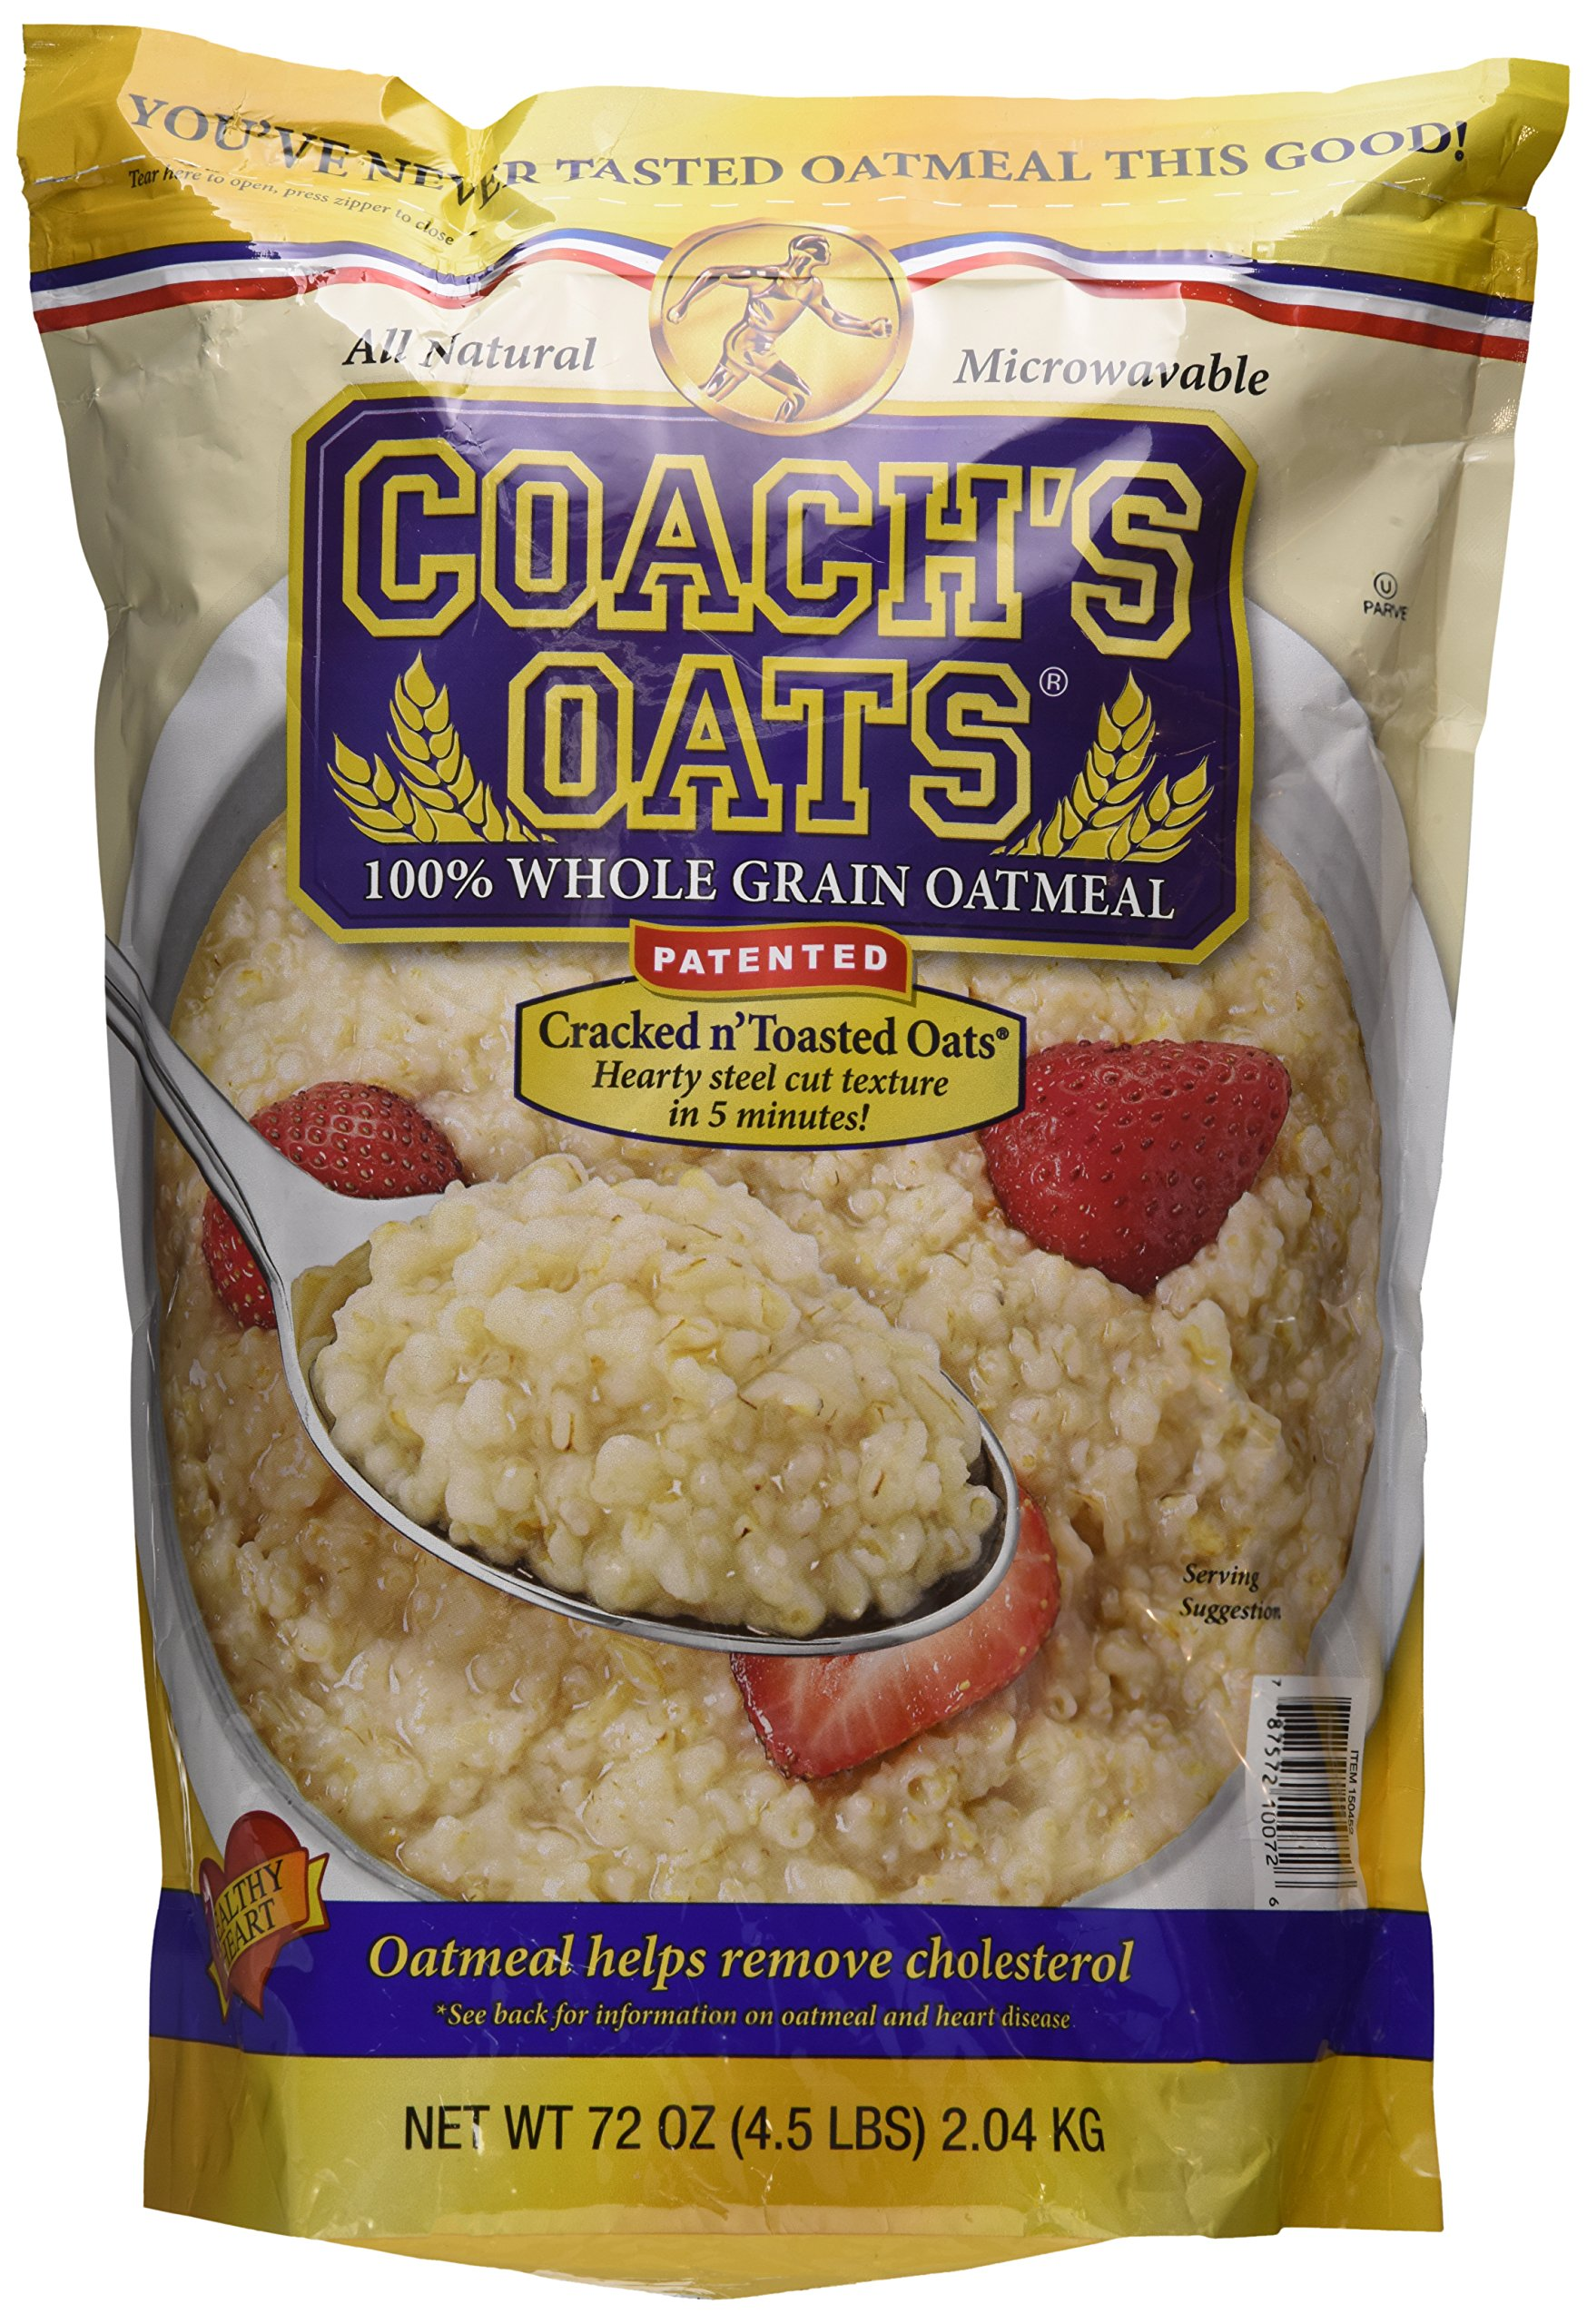 Coach's Oats 100% Whole Grain Oatmeal Two Pack (4.5 Lbs) Total 9 Pounds